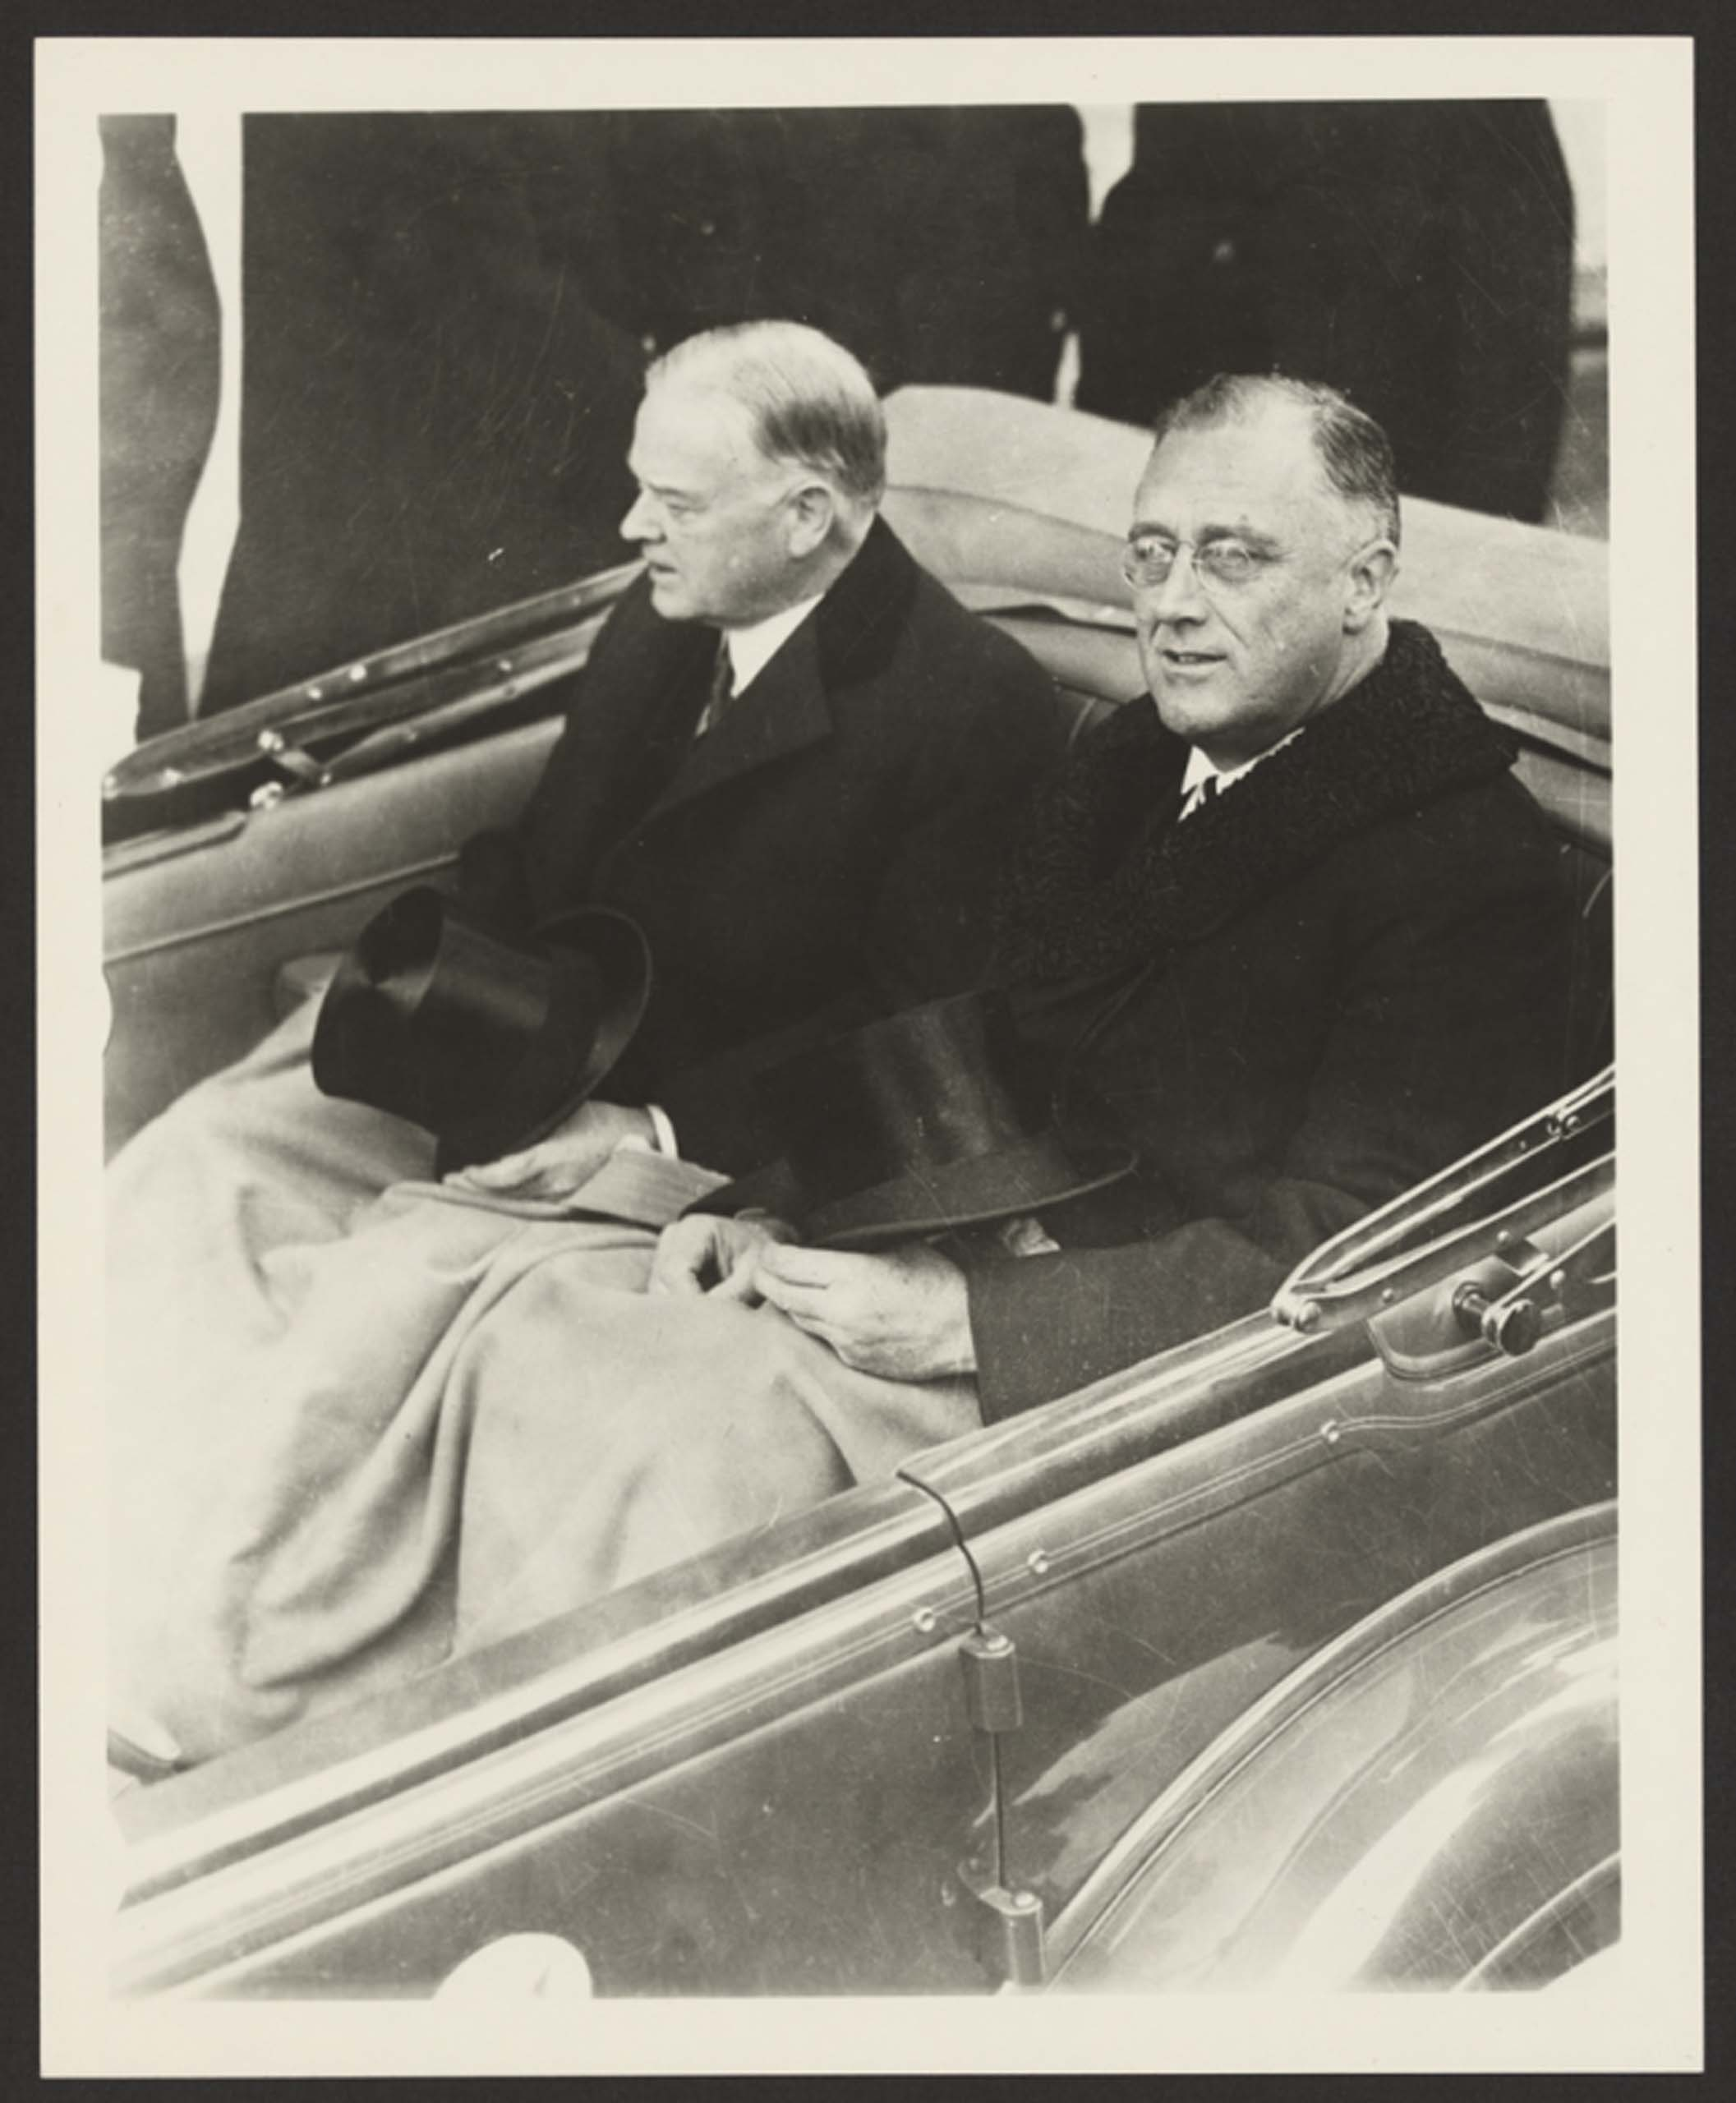 March 4, 1933. Franklin Delano Roosevelt and Herbert Hoover in a convertible automobile on their way to the U.S. Capitol for Roosevelt's inauguration.